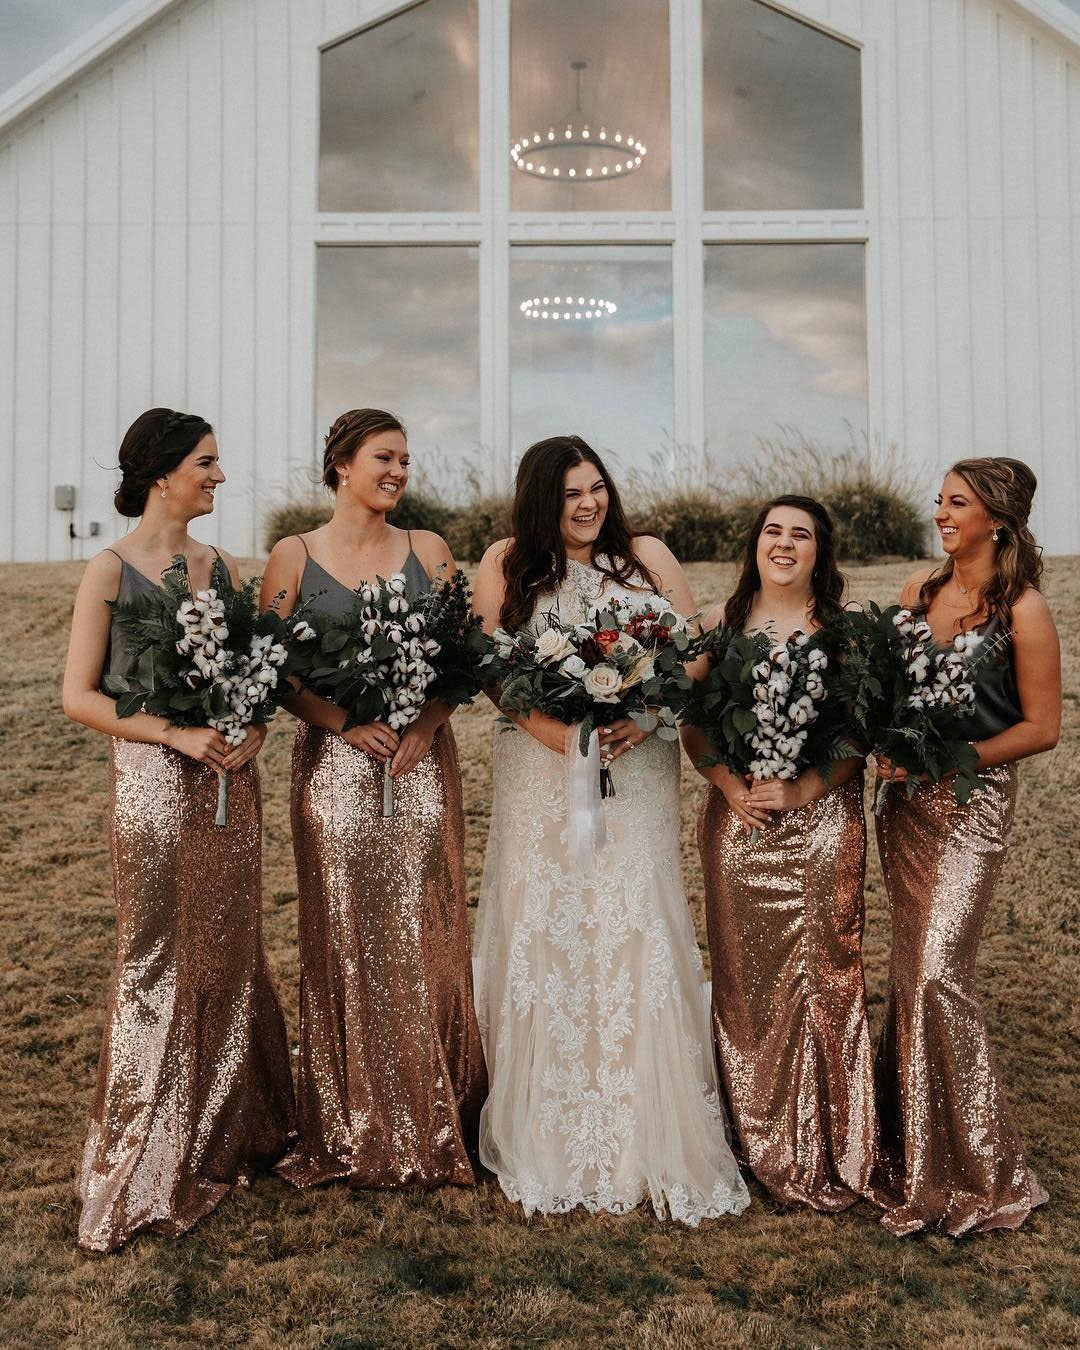 wedding colors Rose Gold Burgundy Oatmeal Beige bride with bridesmaids